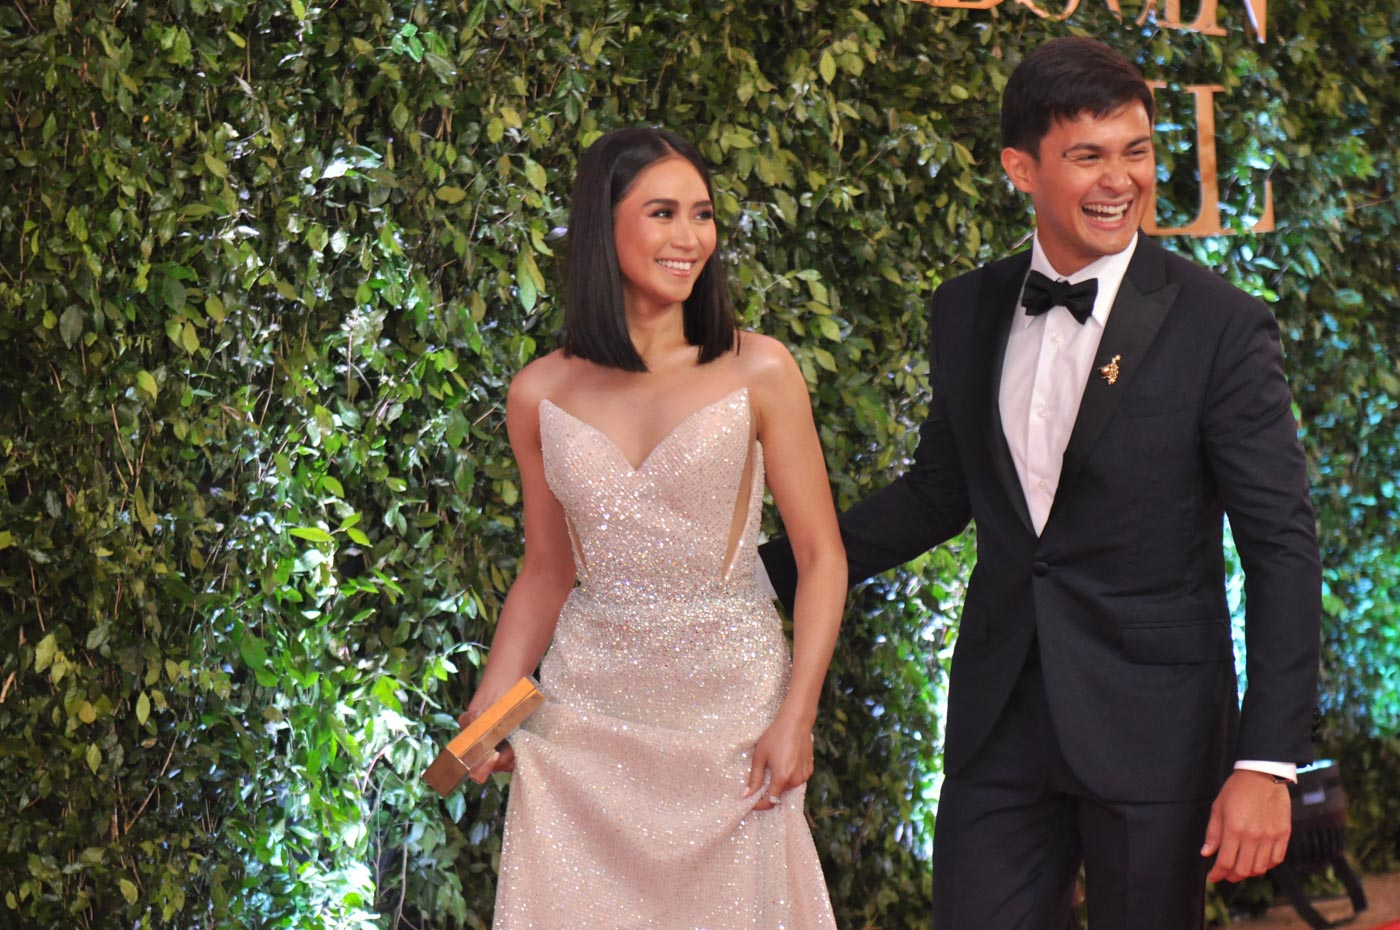 Sarah geronimo and matteo guidicelli dating 2019